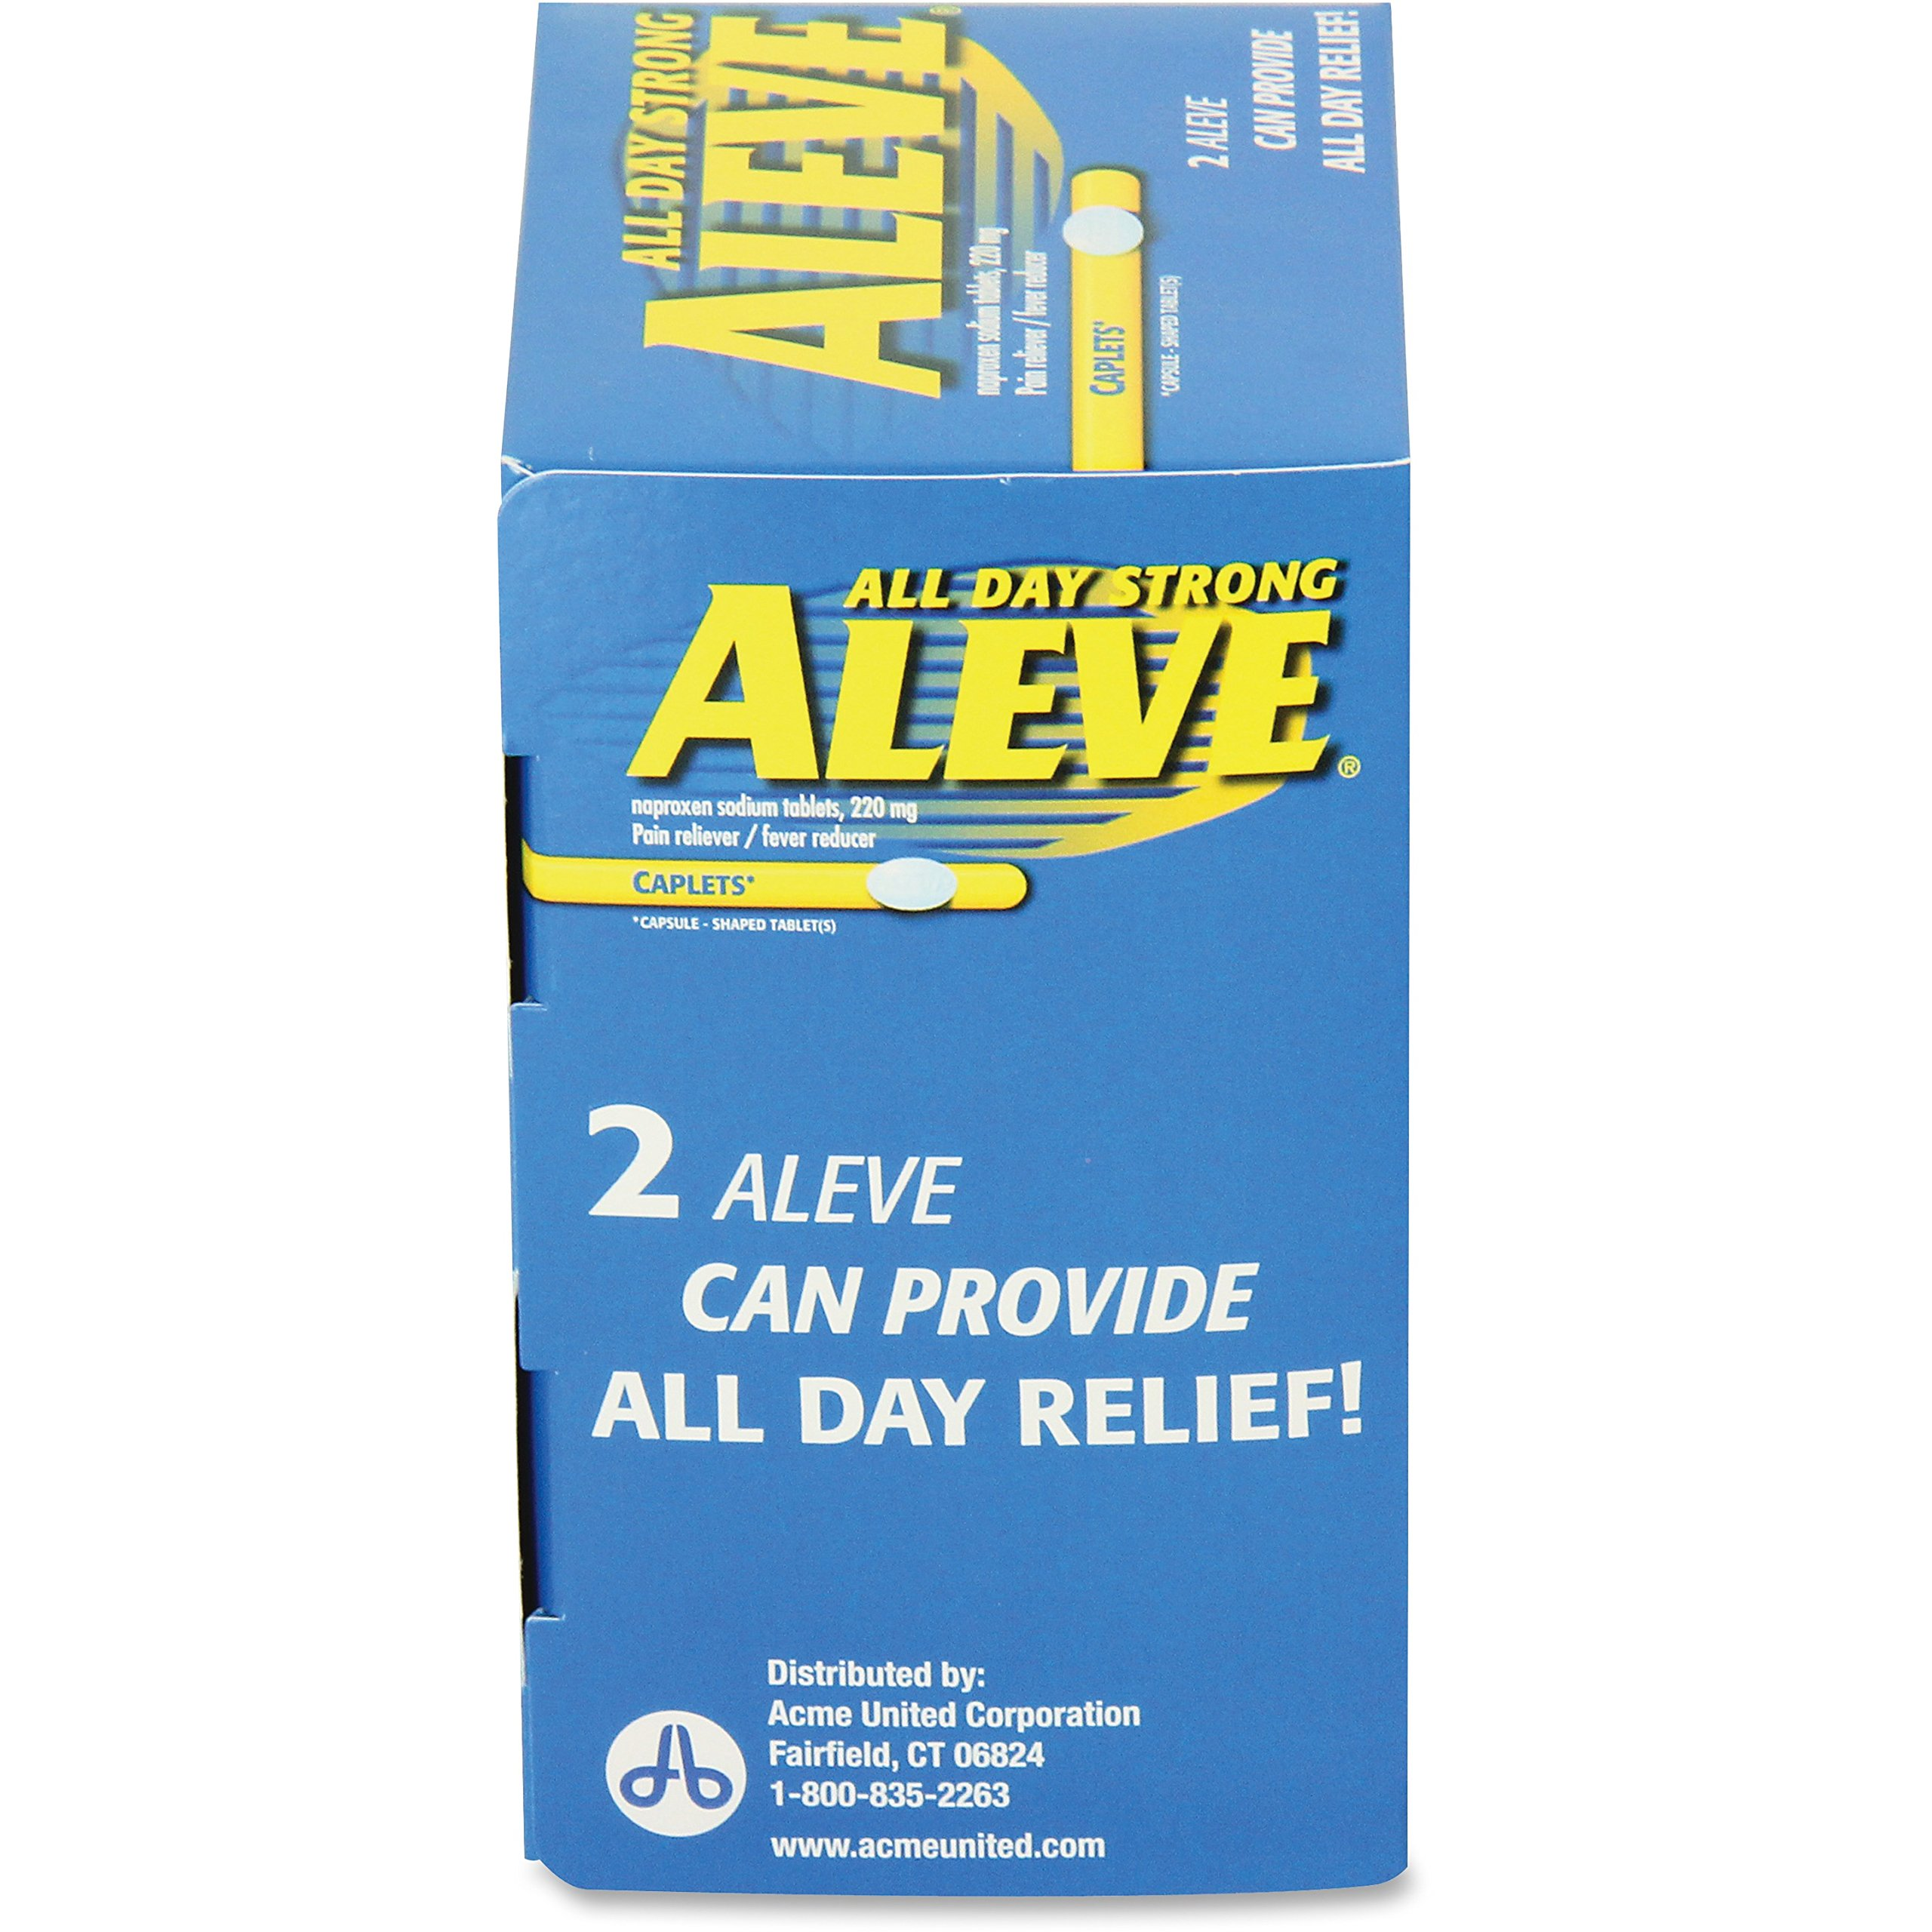 Aleve 90010 Aleve Pain Relief Caplets Packs Single Dose 50/BX Blue by Aleve